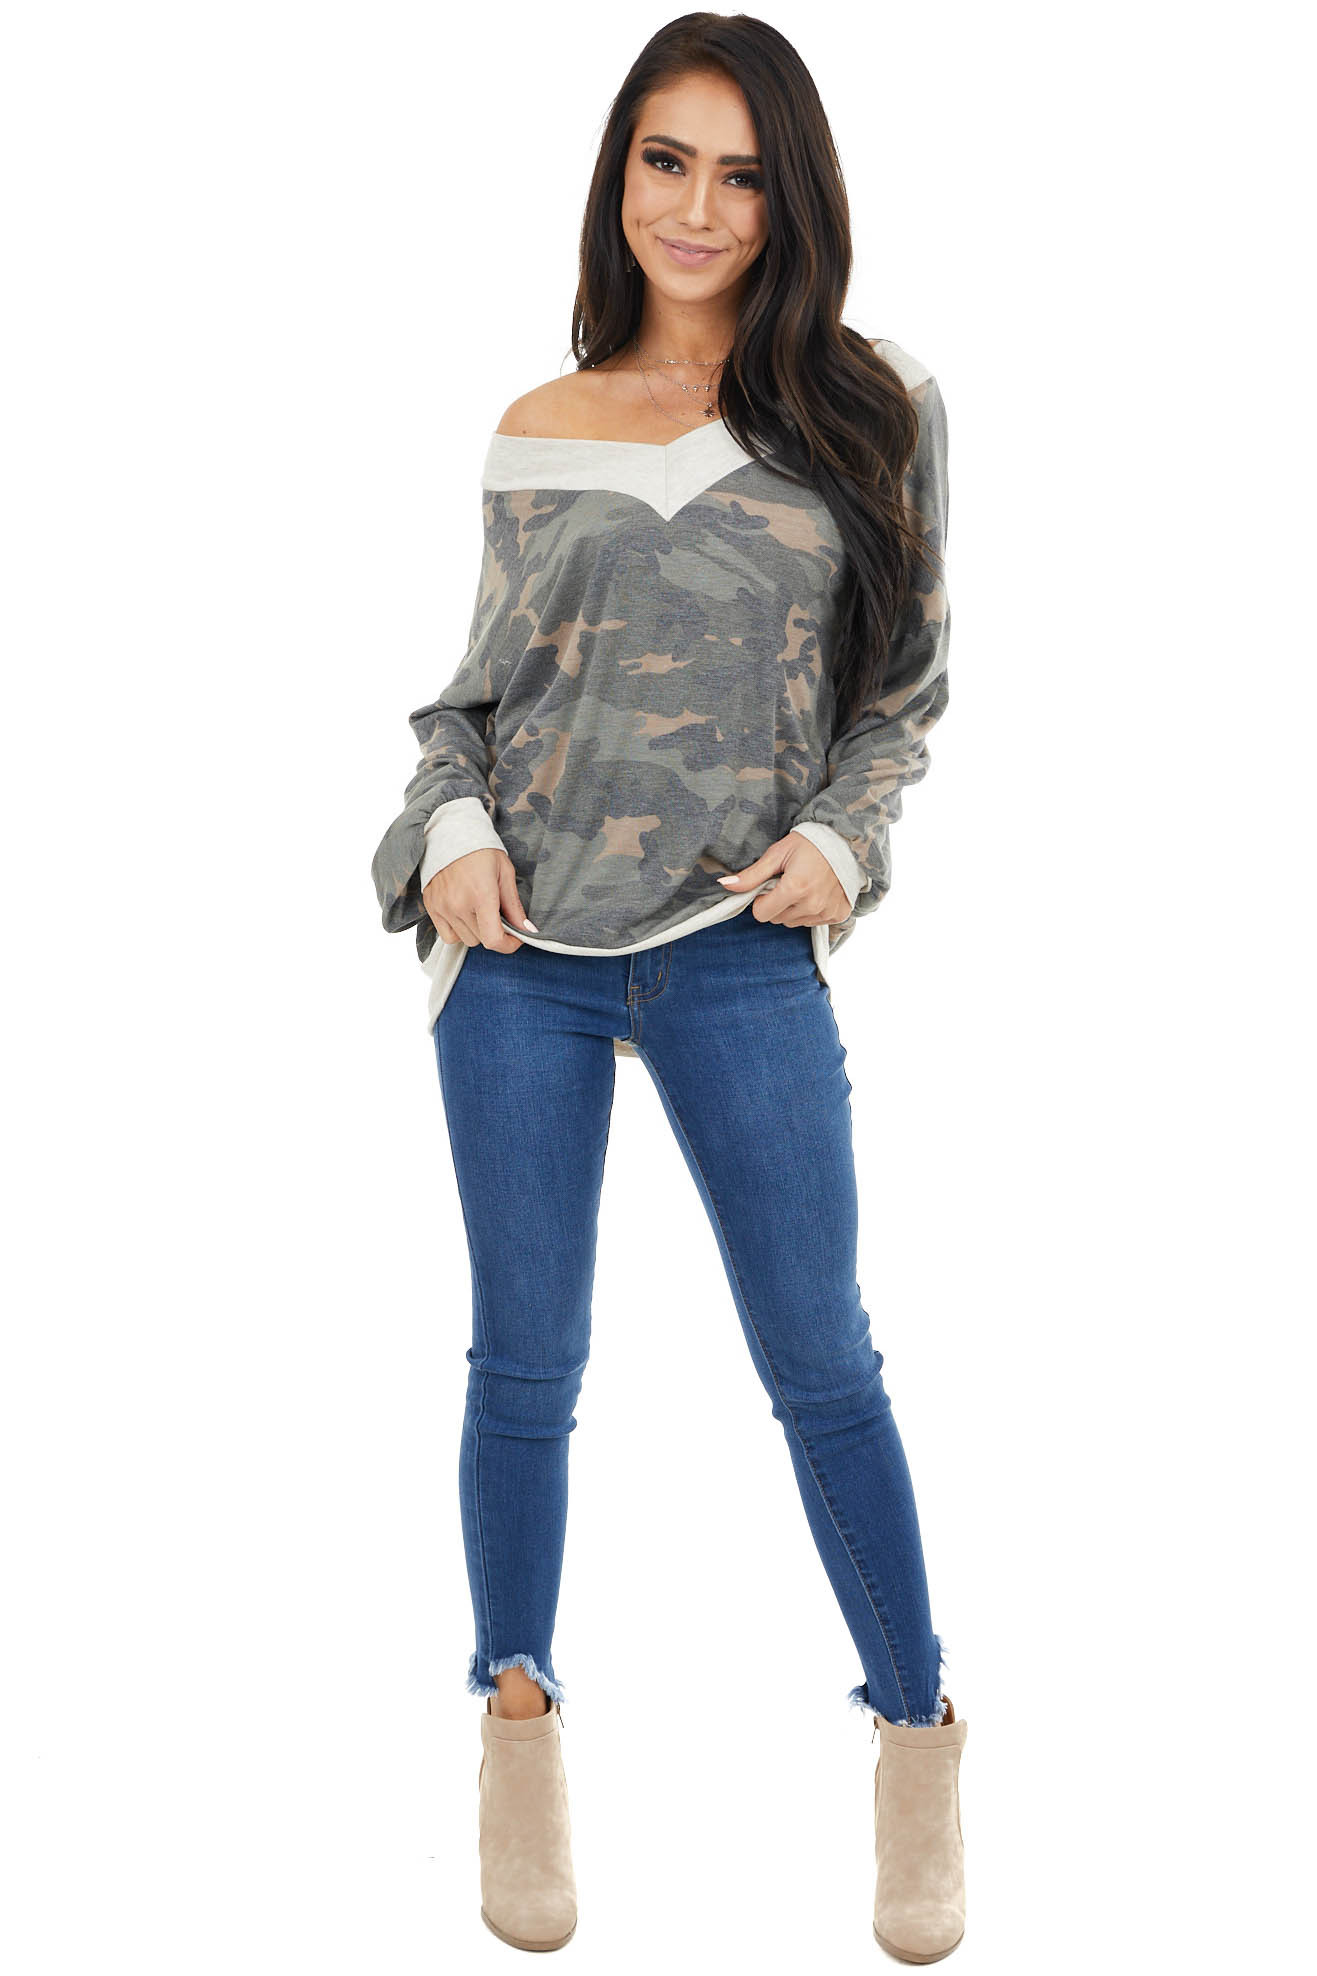 Olive Camo Print Knit Top with Oatmeal Trim Details